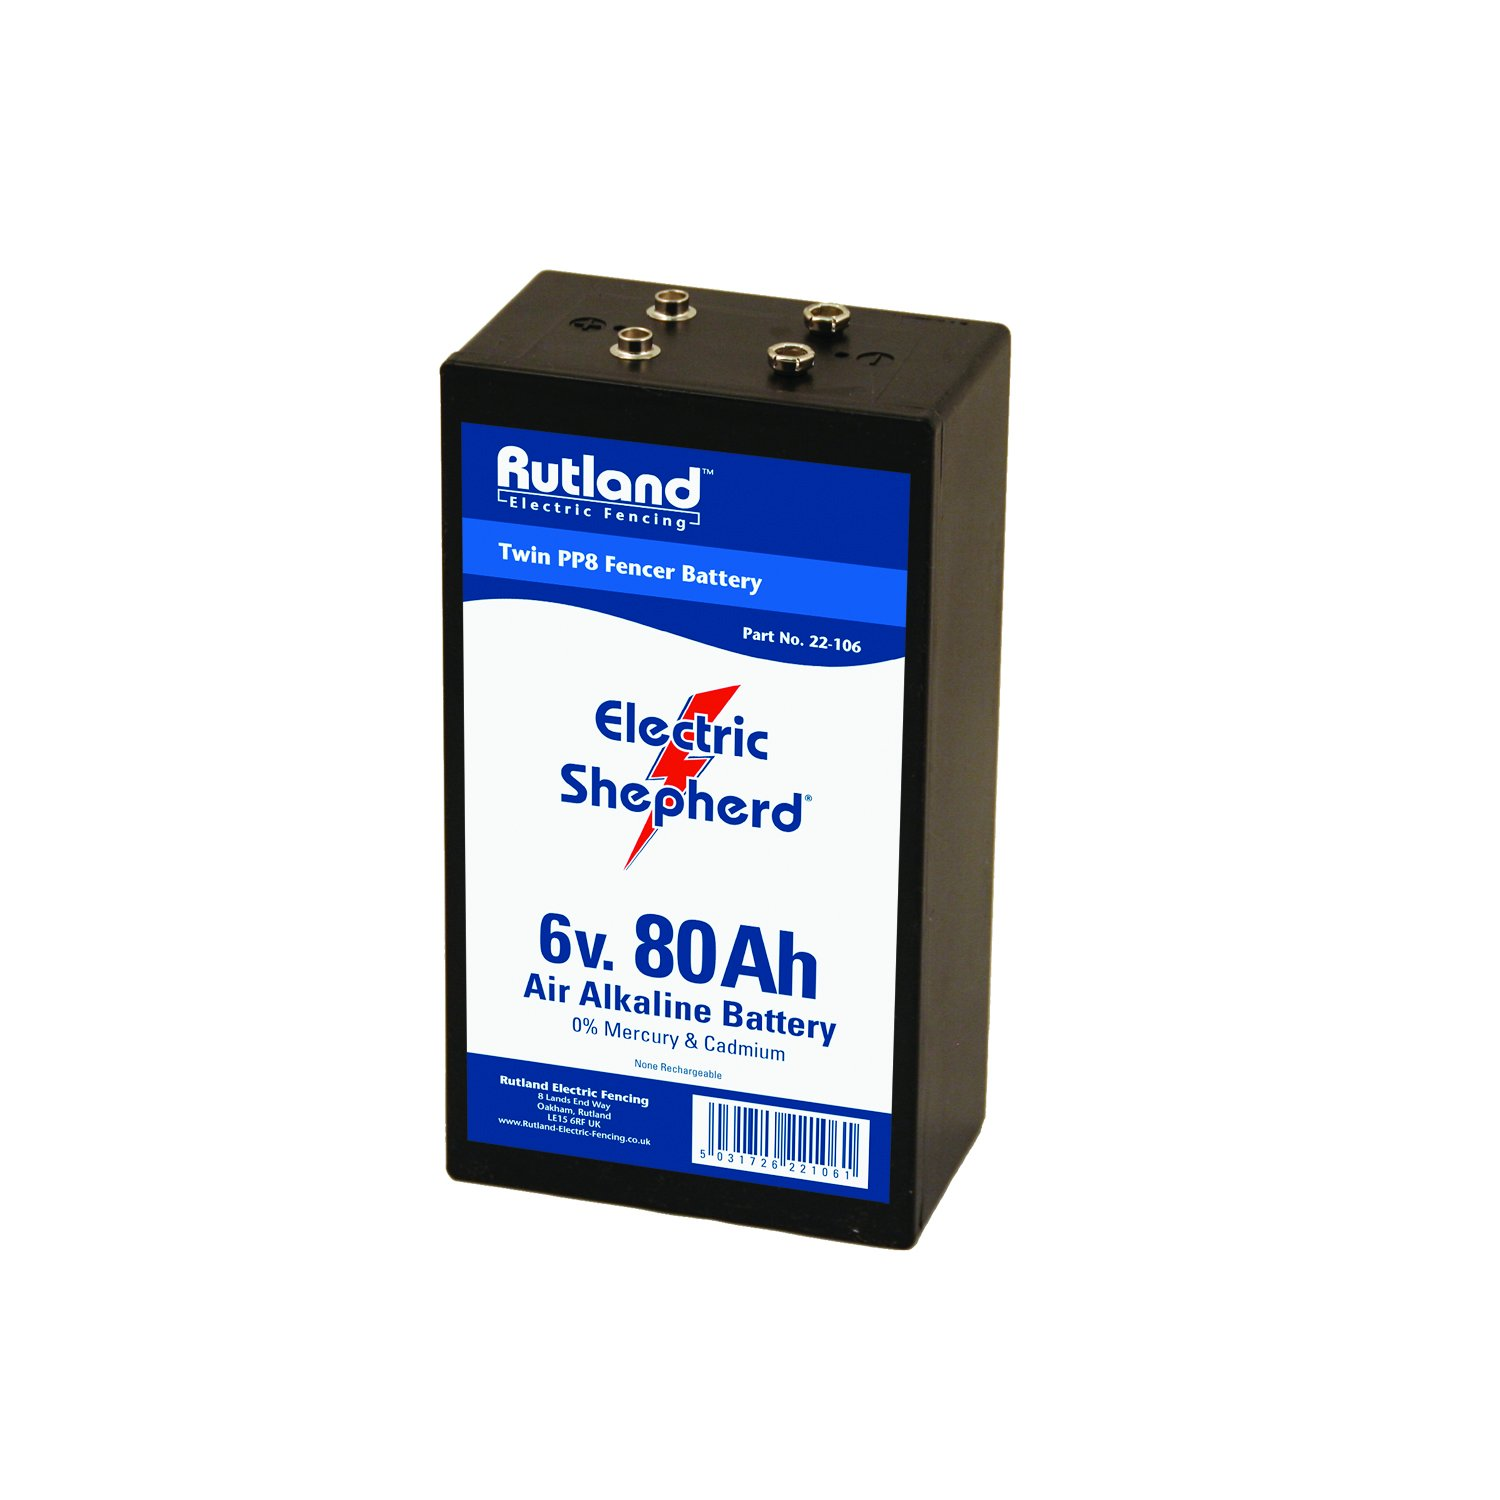 Rutland Battery for Zaungerä te 80 22– 106R AMP 22-106R